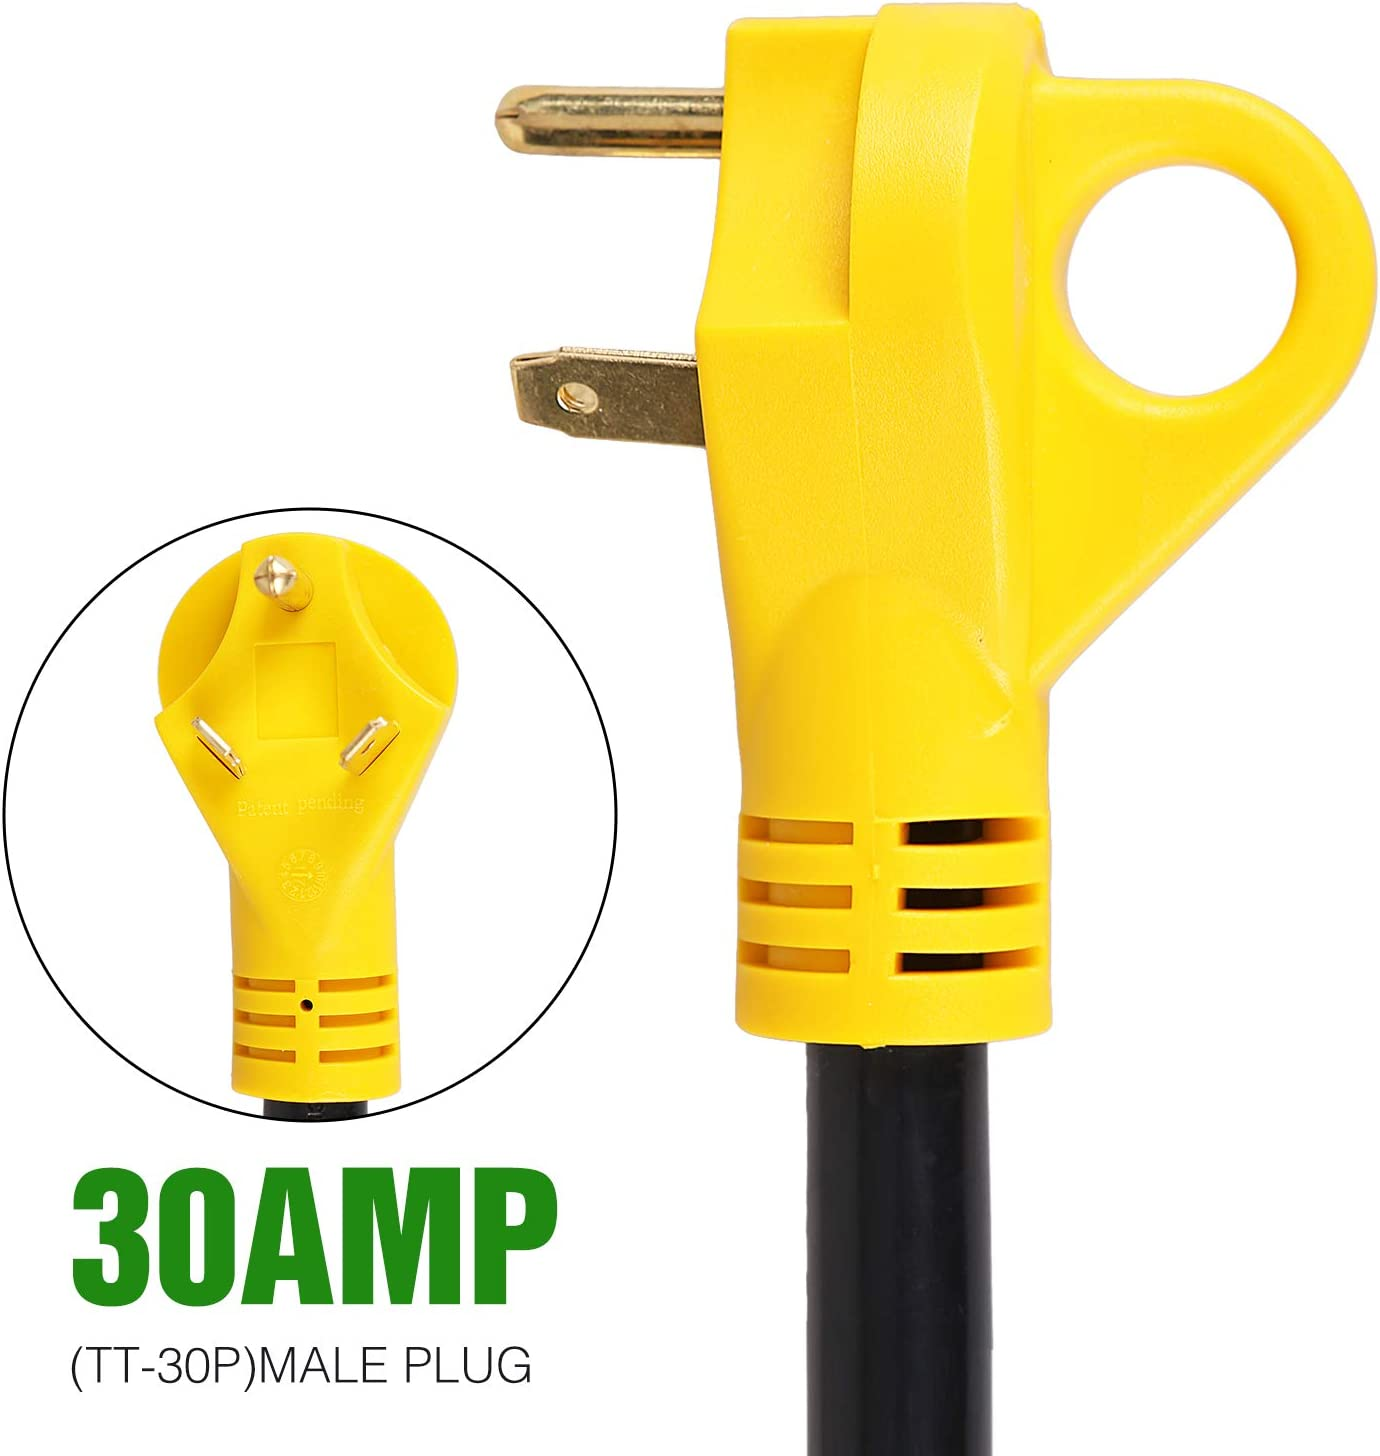 BrightHome 30 Amp Male to 50 Amp Female RV Power Cord, Heavy Duty Electrical Adapter with Dogbone Grip Handle, 30M/50F RV Plug Adapter, 12 Inches (125V/3750W): Automotive